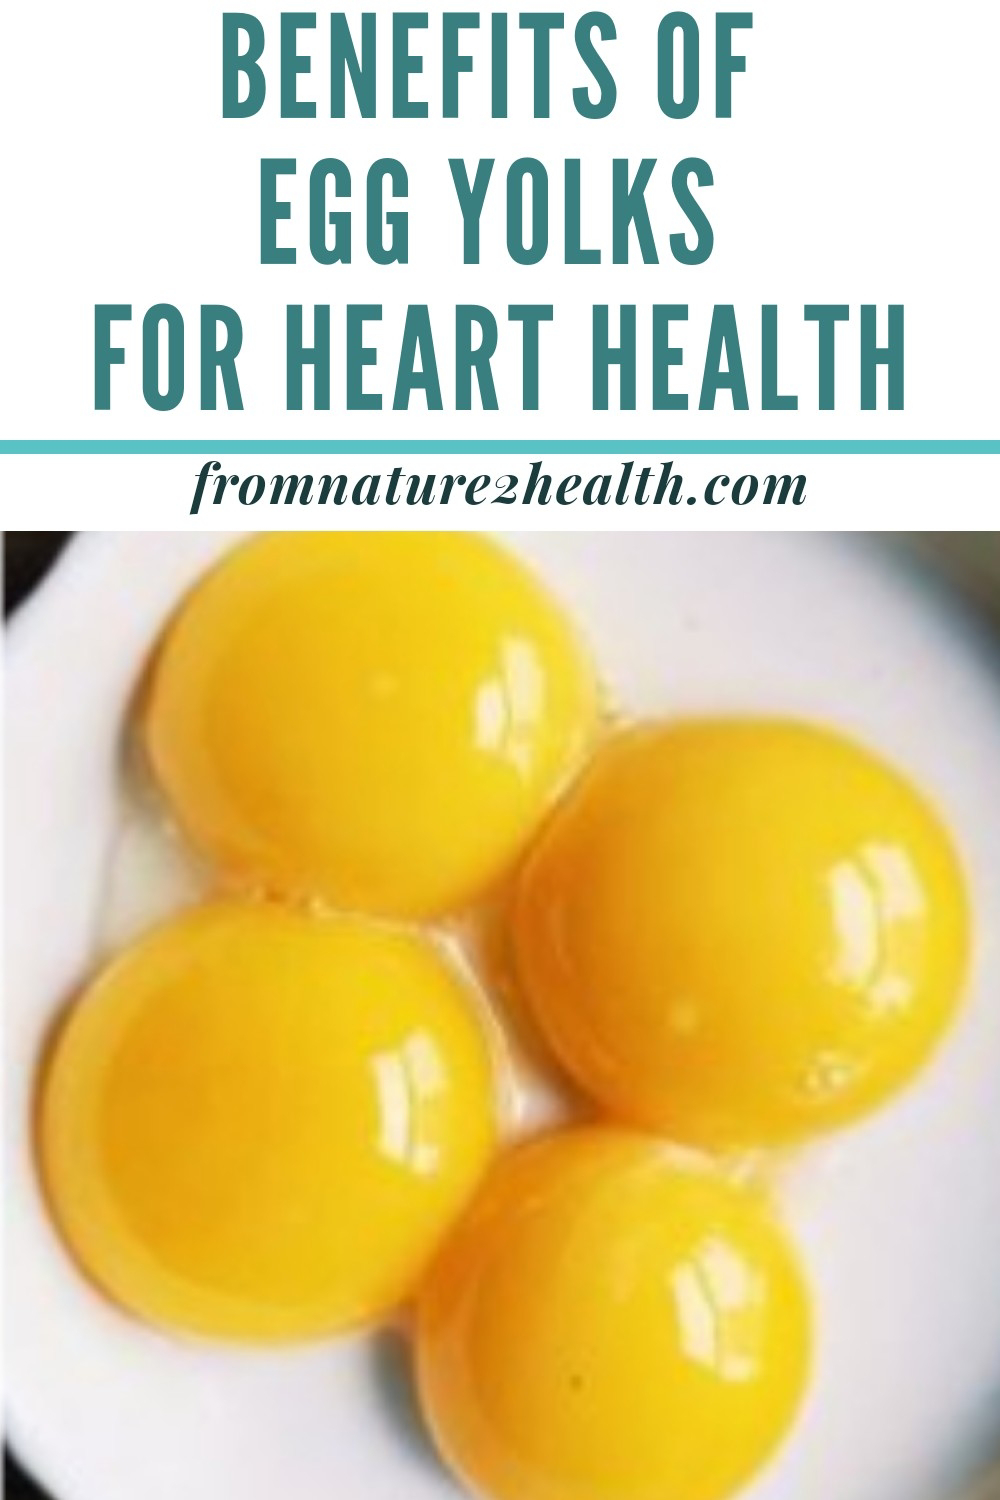 Benefits of Egg Yolks for Heart Health